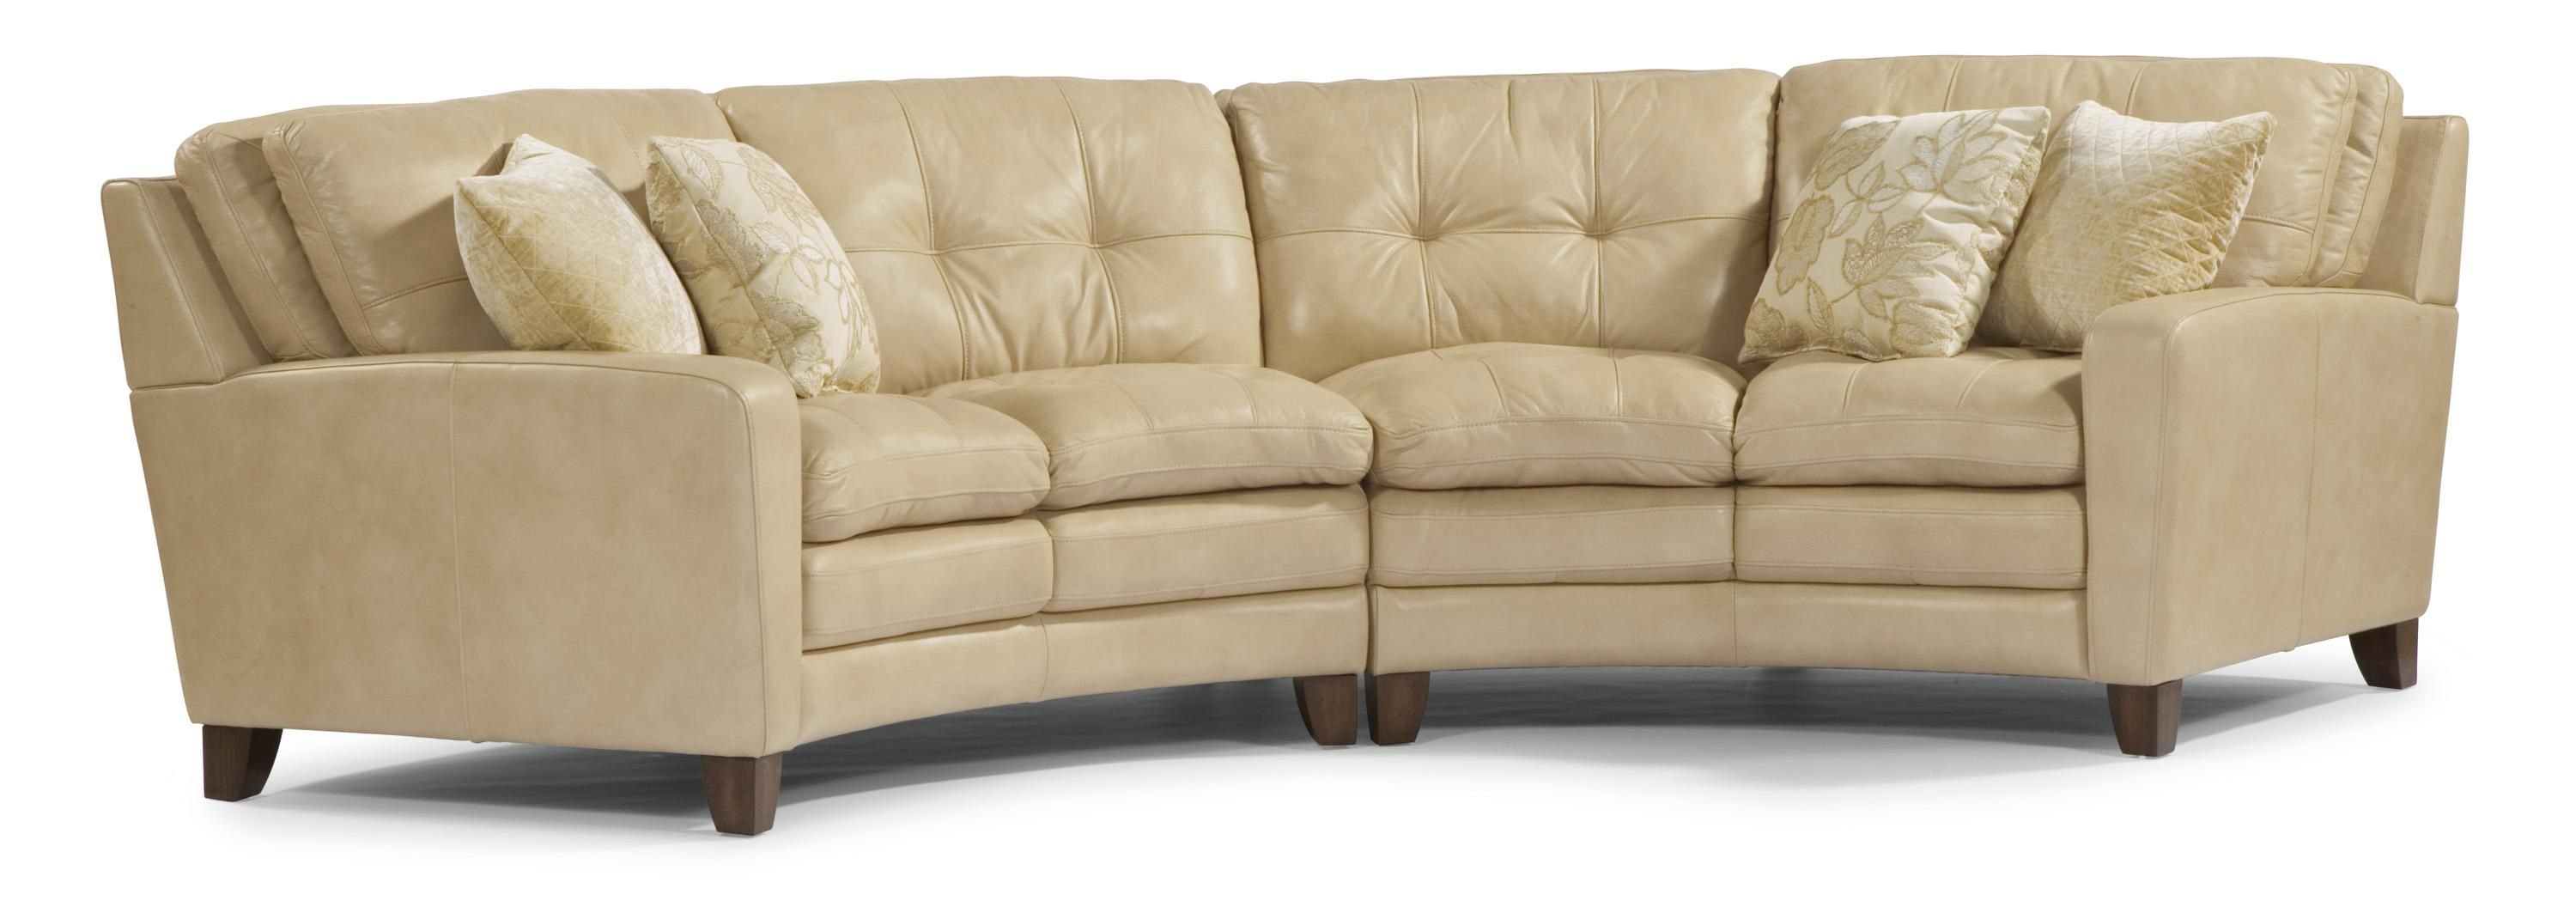 Sectional Sofa By Flexsteel